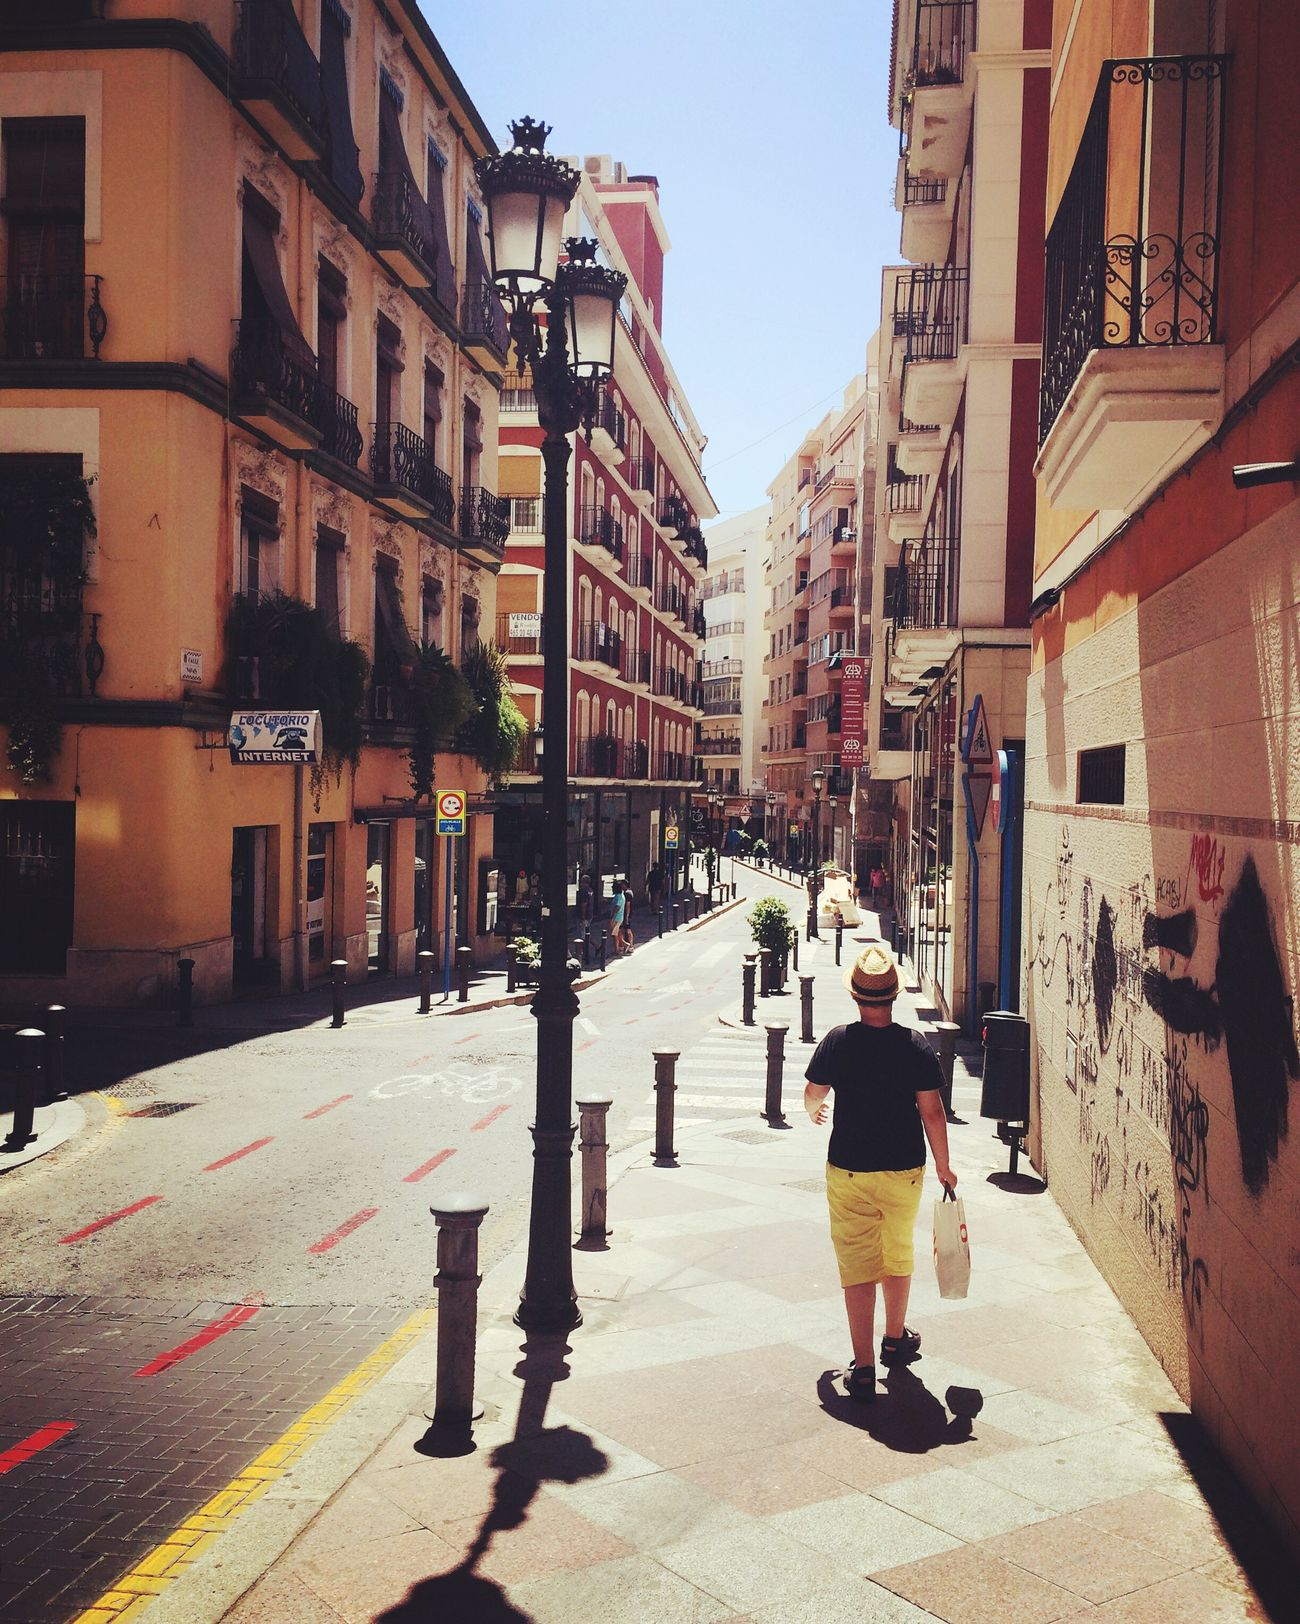 Аликанте Alicante, Spain Alicantegram Walking Around Summer ☀☀☀ 😚 Streetphotography Street Photography